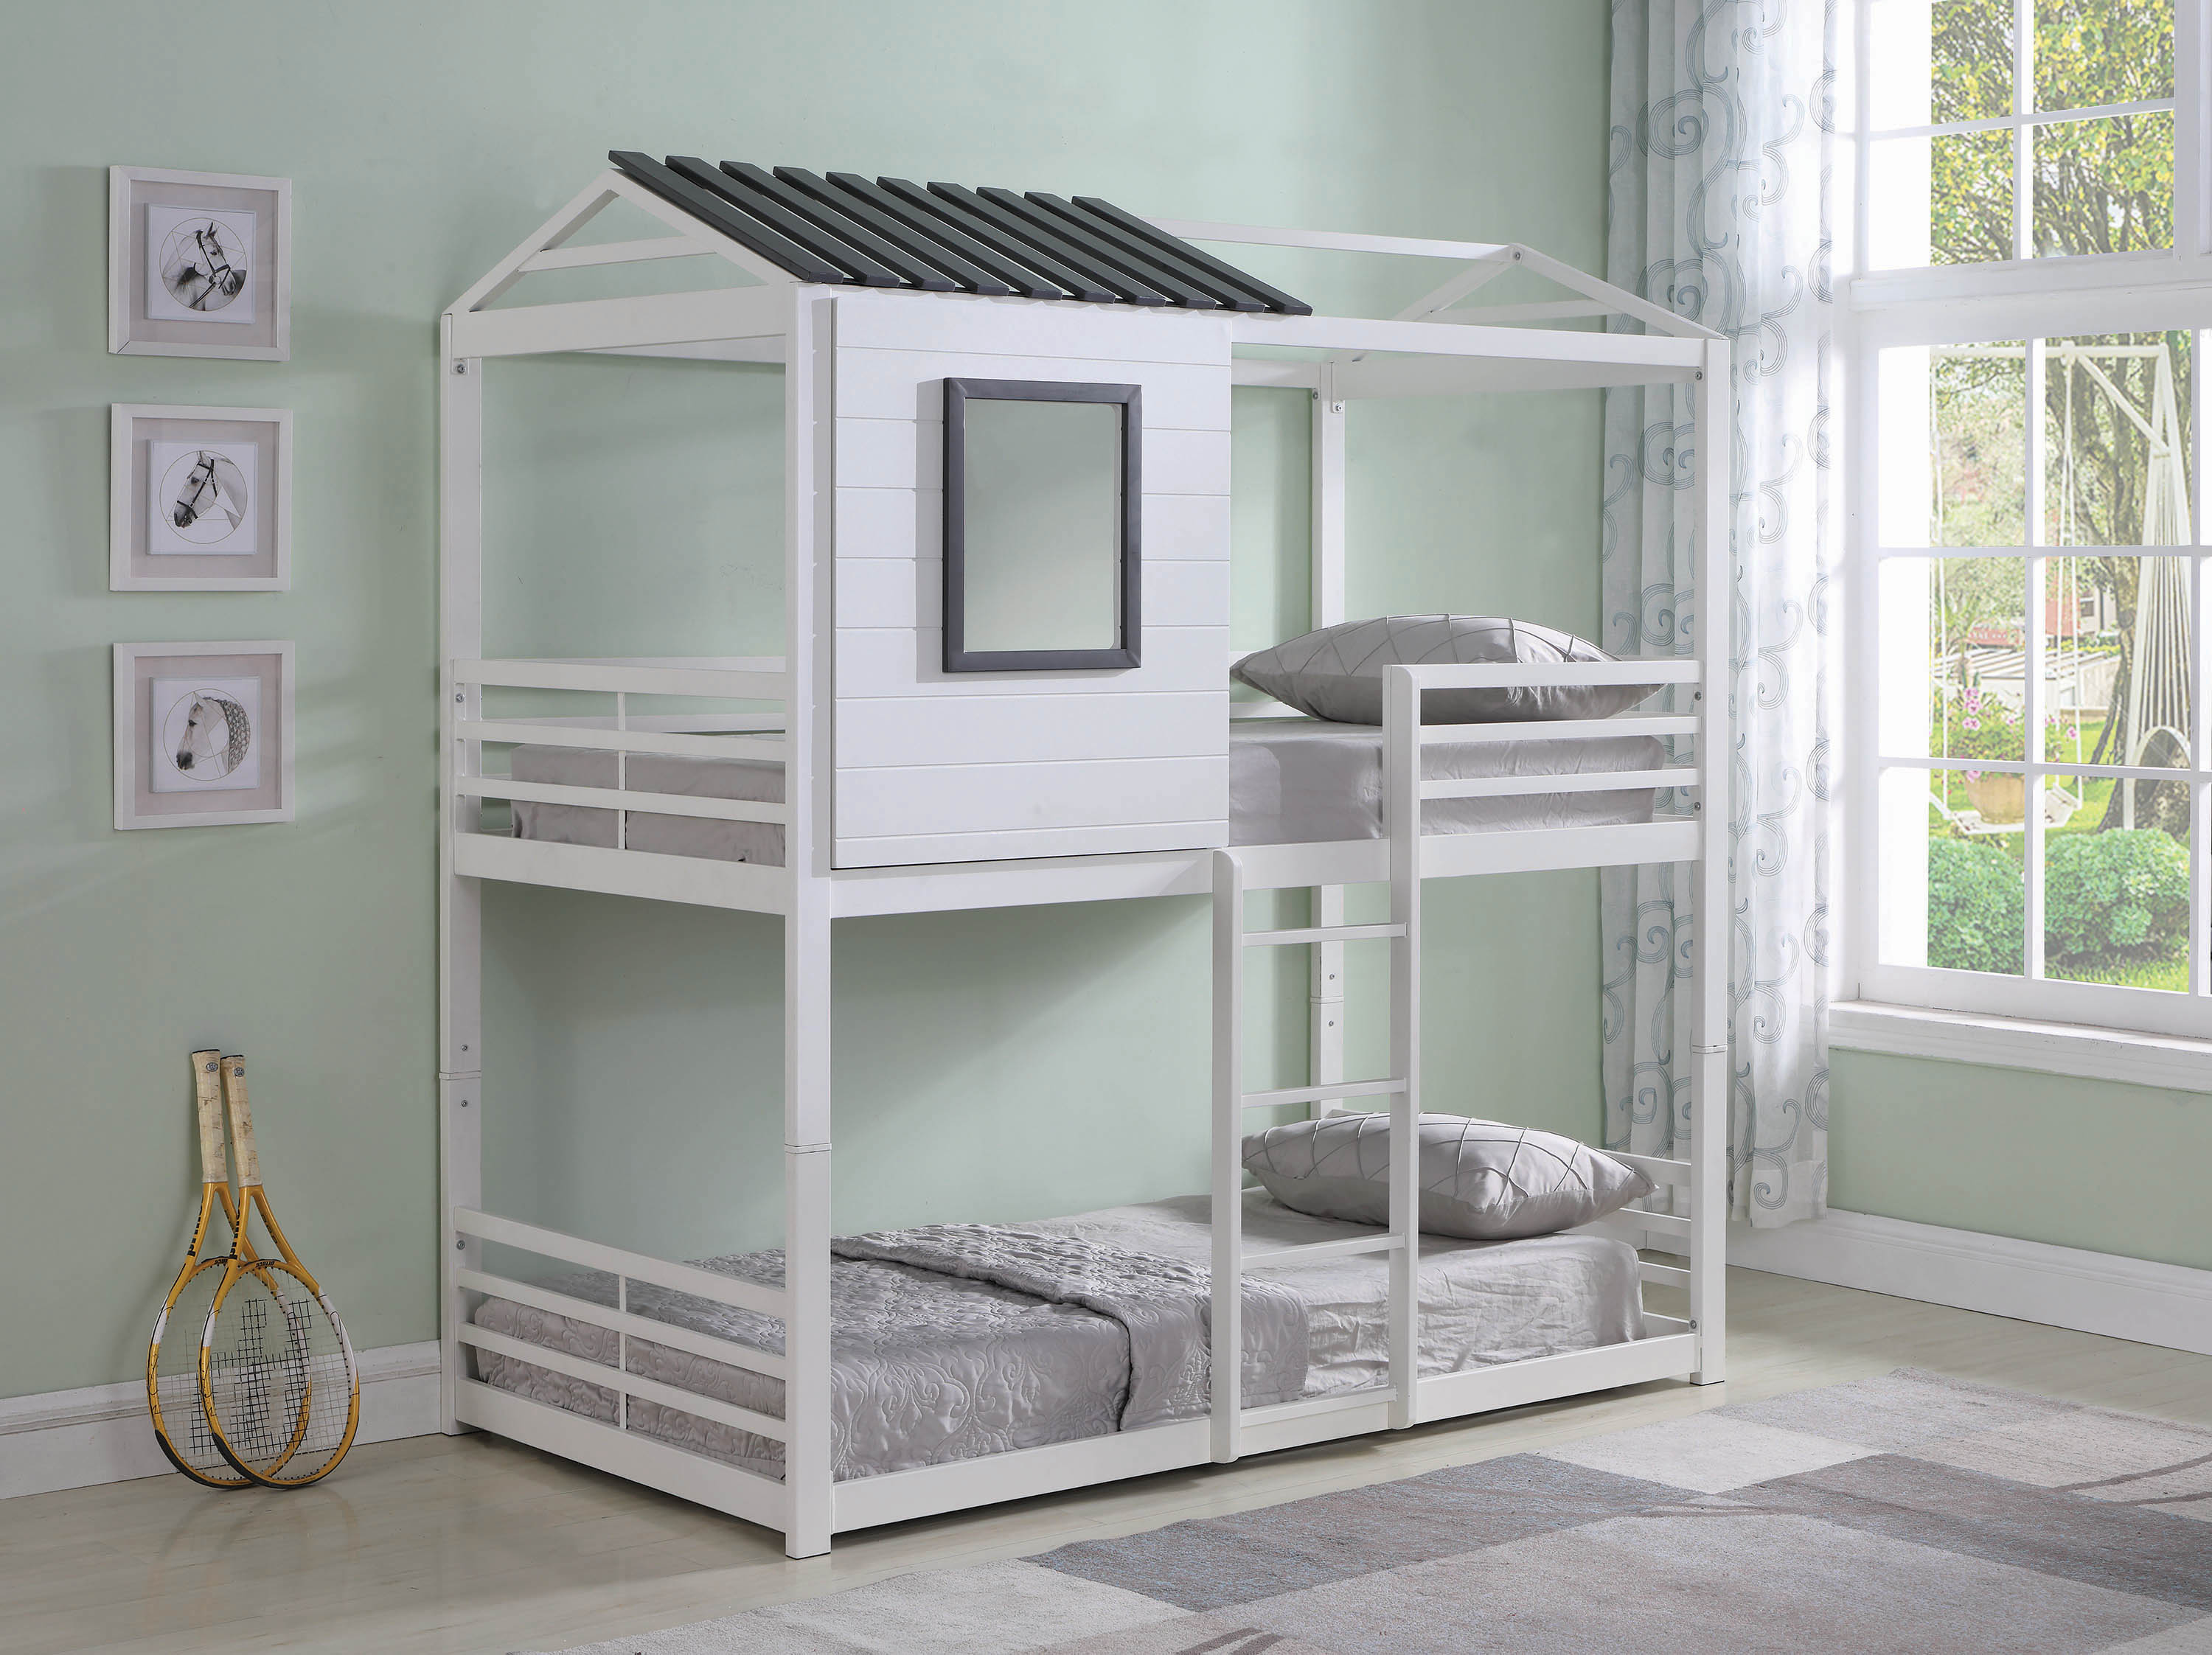 Image result for iron bunk bed kids